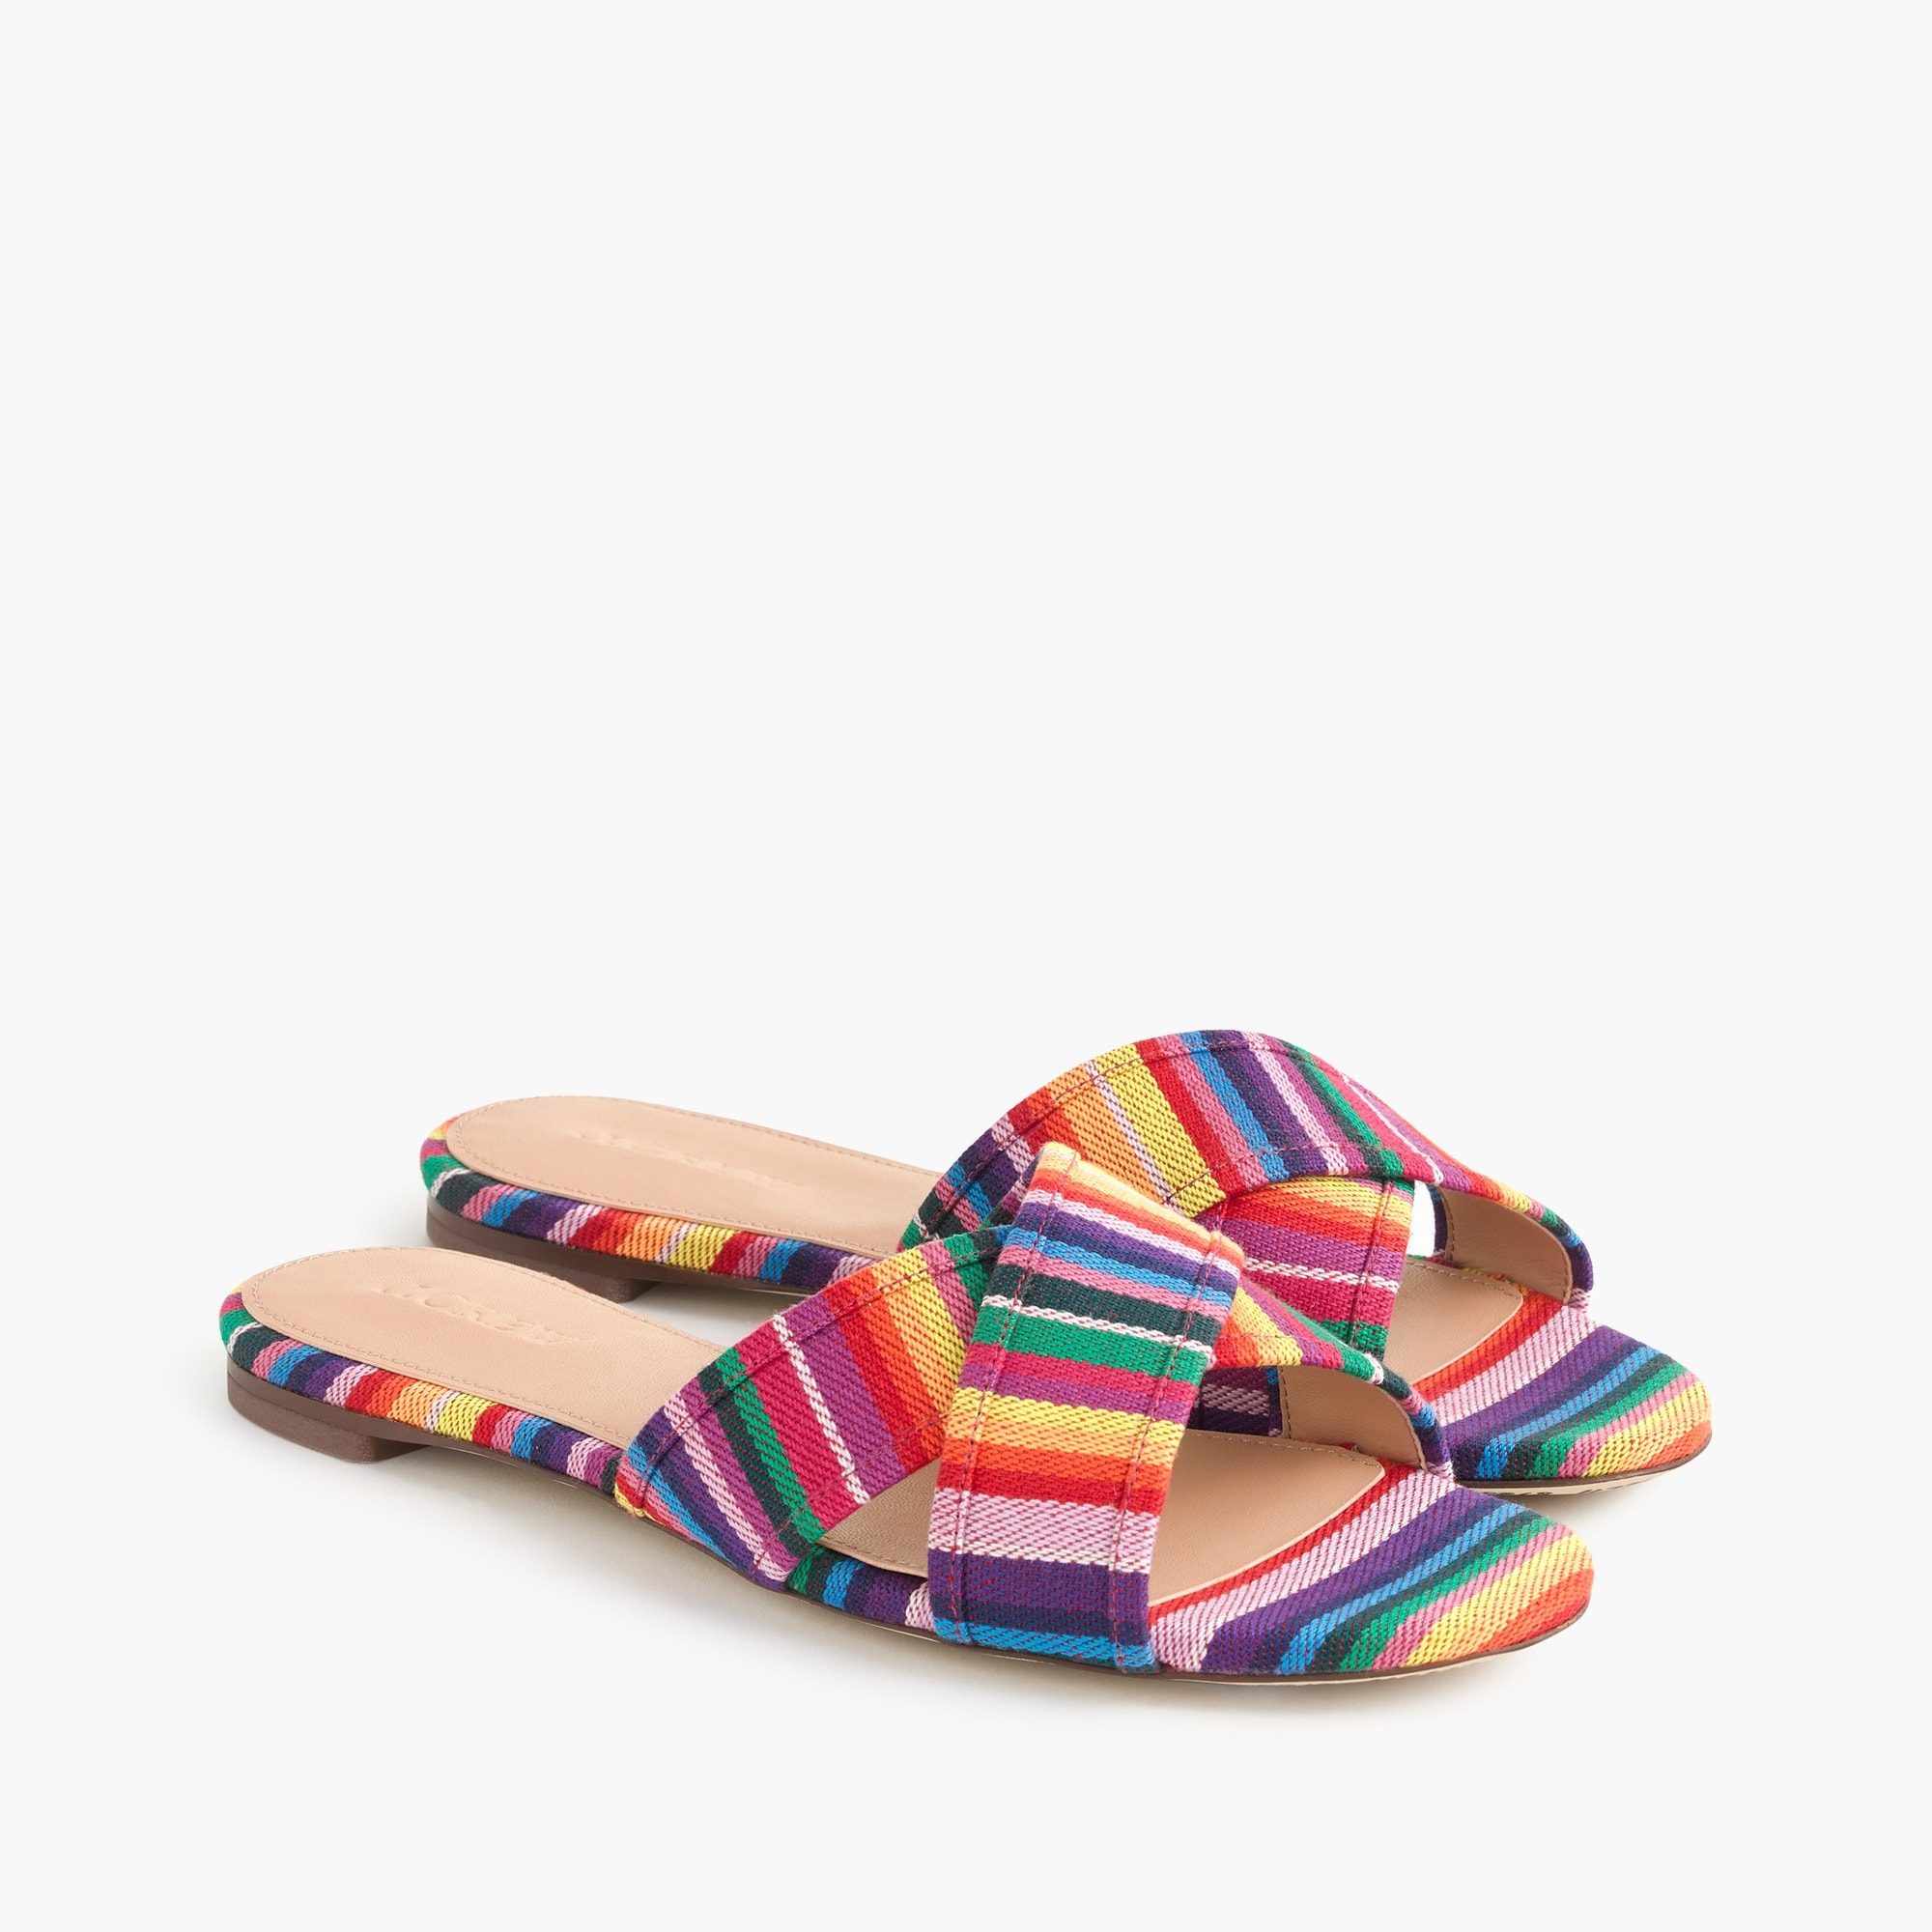 women's multistripe cora crisscross sandals - women's sandals